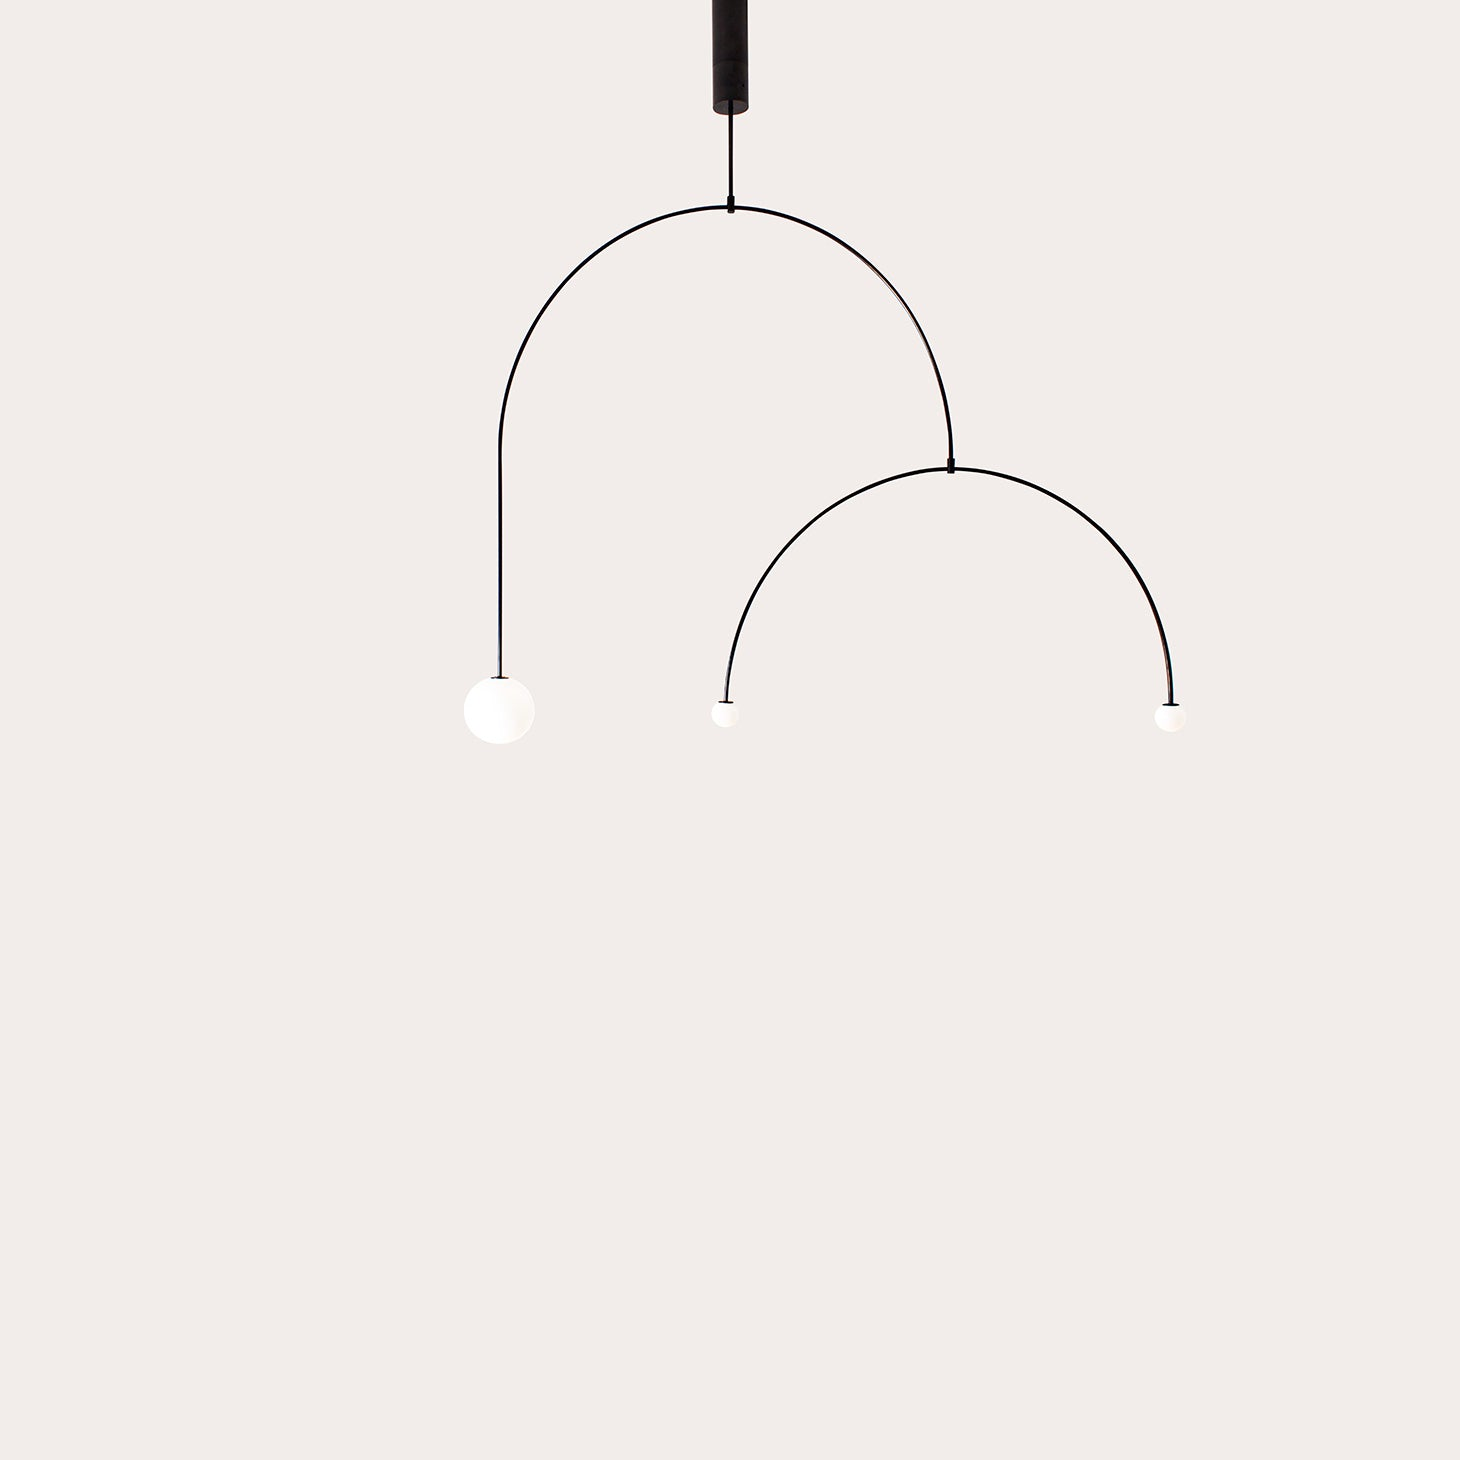 Mobile Chandelier 9 Lighting Michael Anastassiades Designer Furniture Sku: 717-160-10040